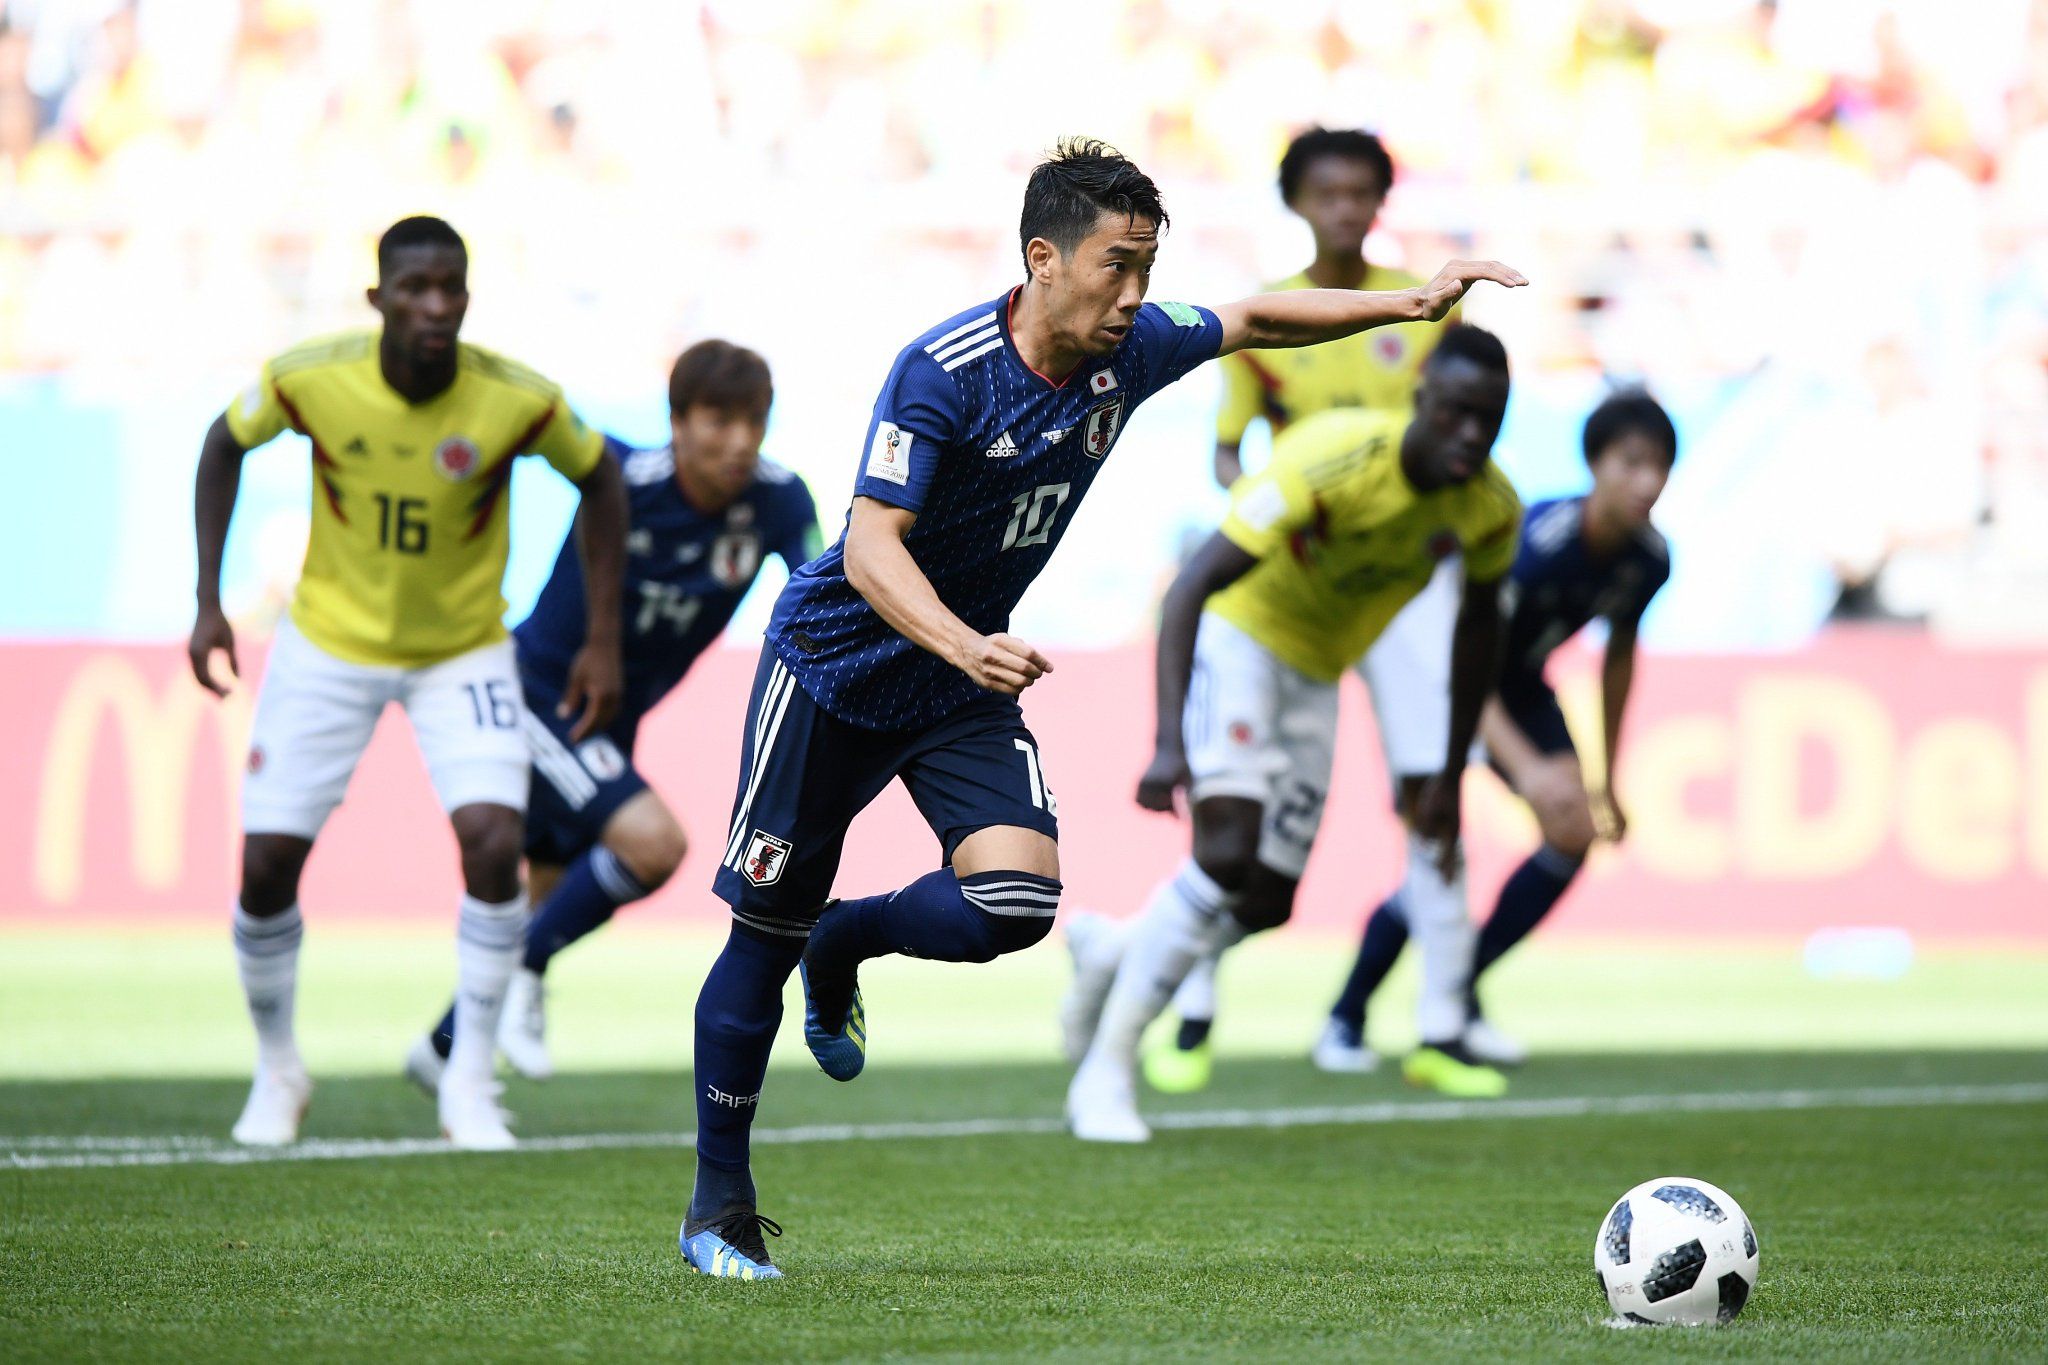 ���� Cool as you like from @BVB's Shinji Kagawa ��  #UCL #WorldCup https://t.co/dhoE1CY3Zs